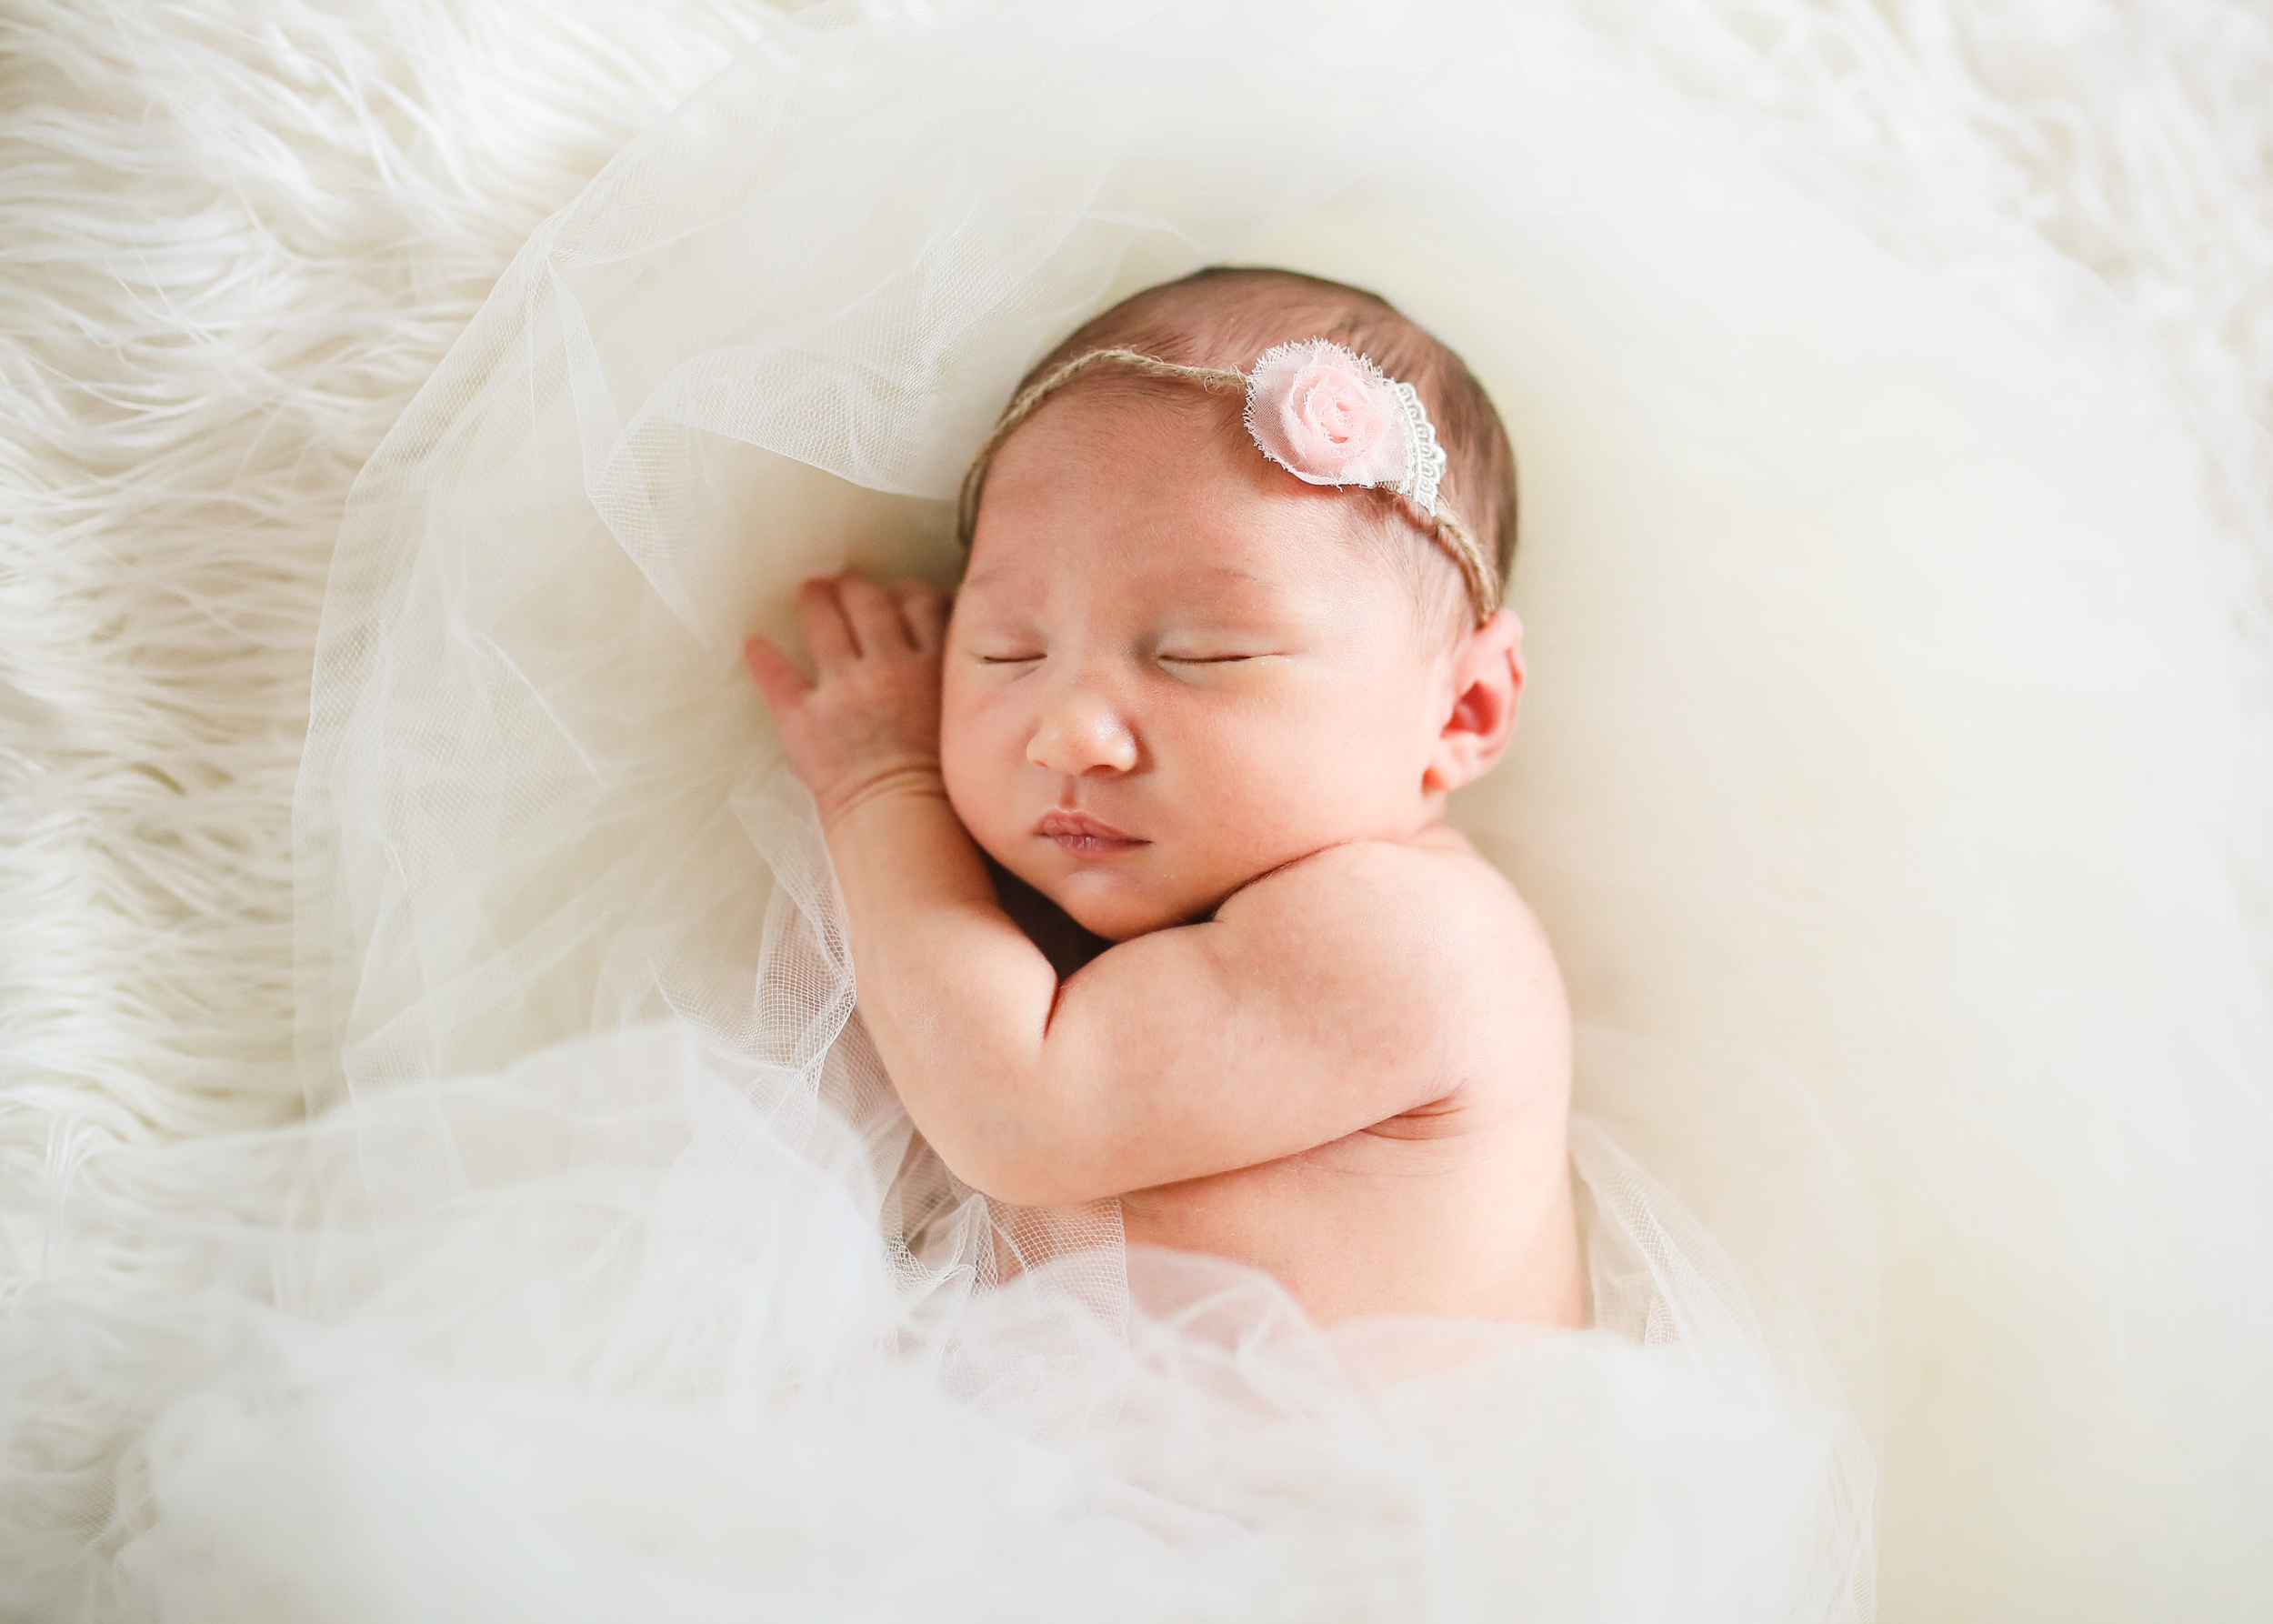 newborn baby girl on tulle